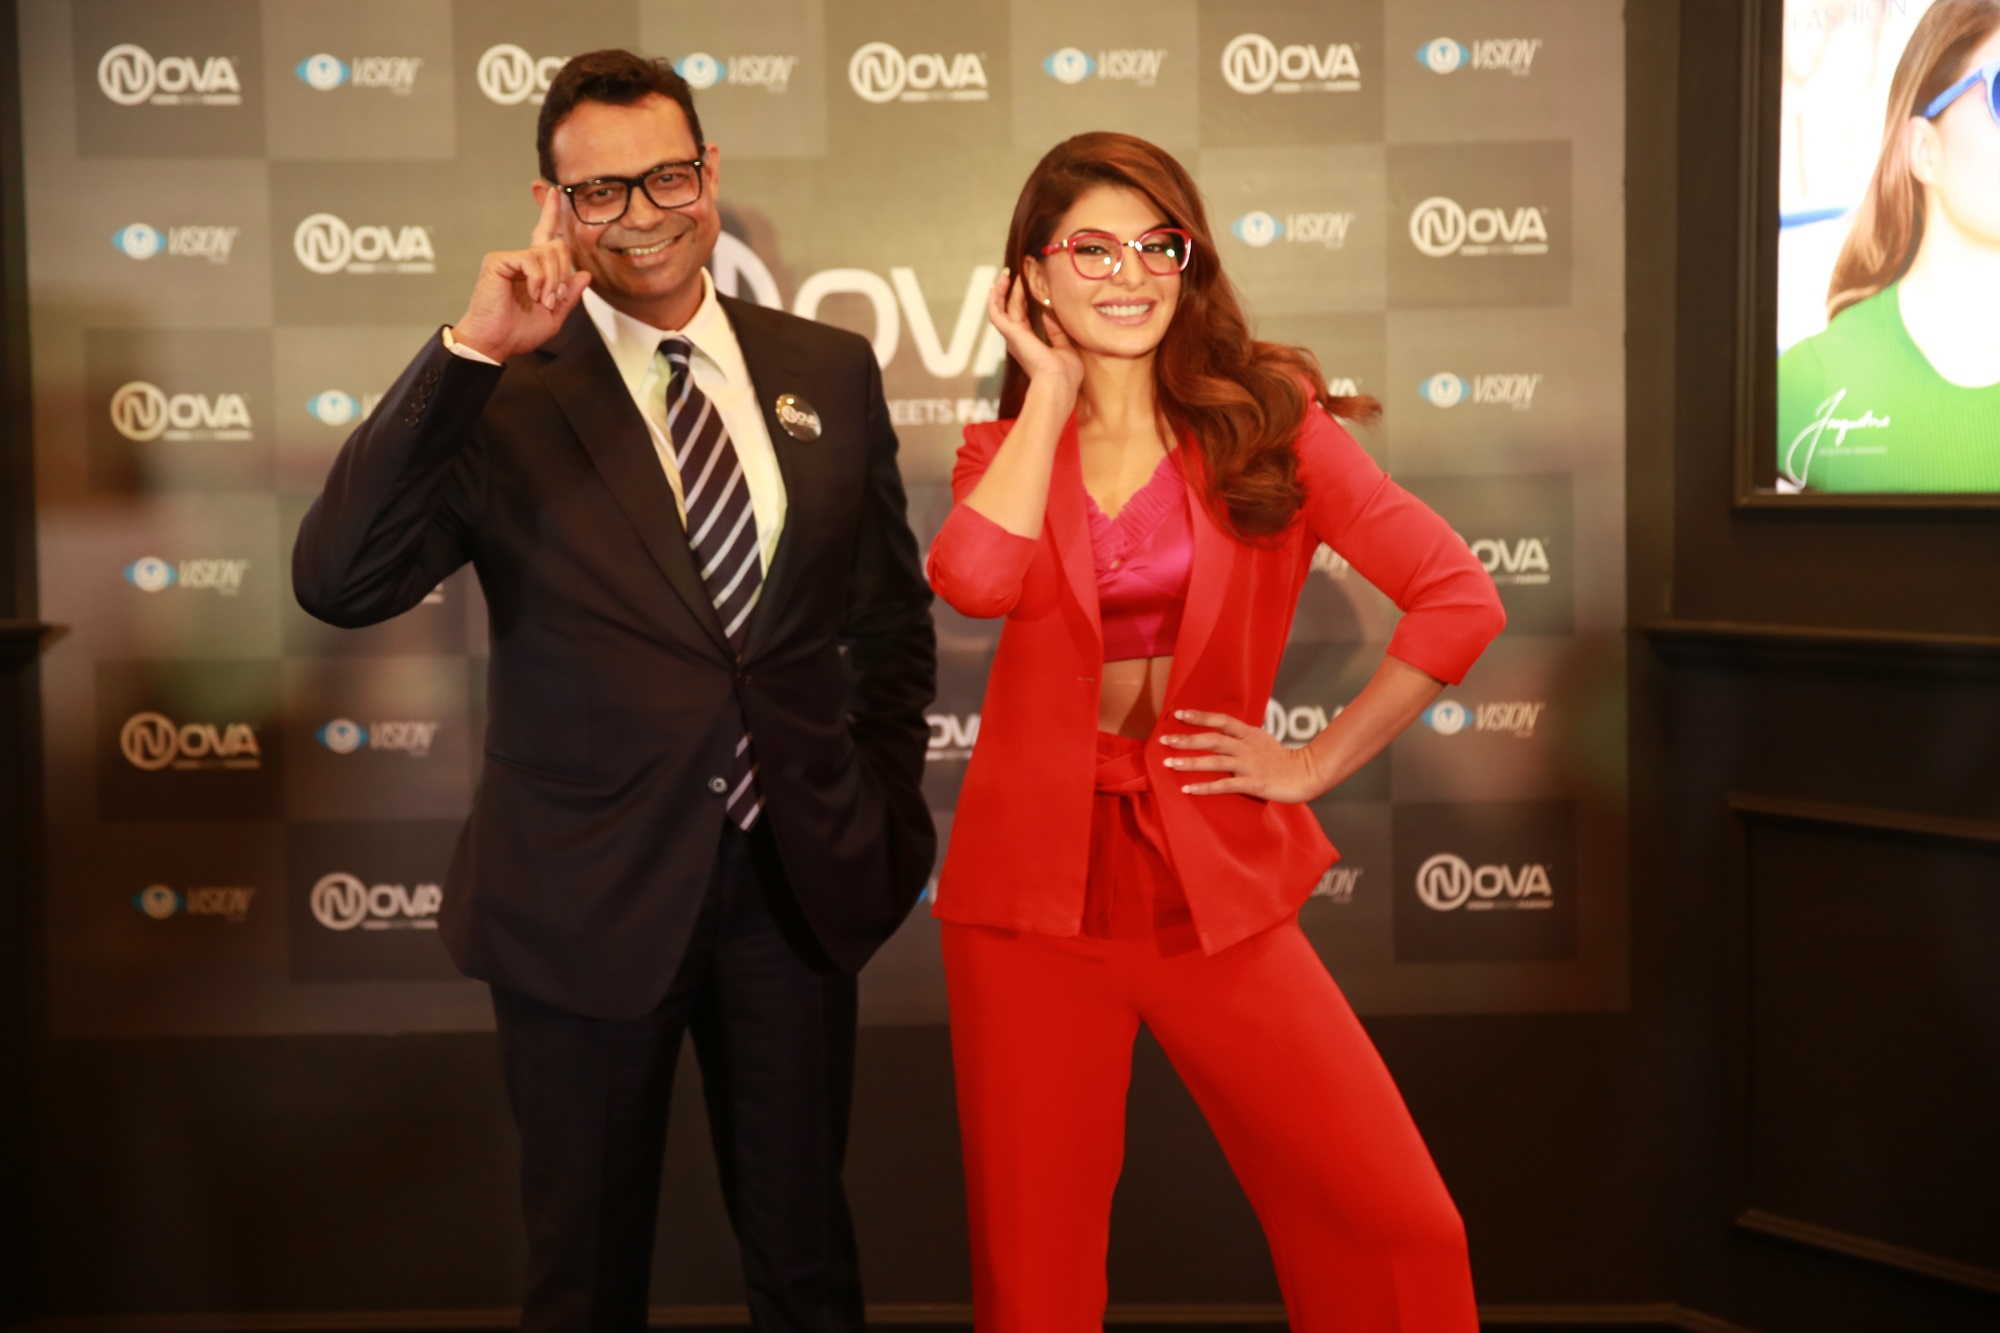 Mr. Lalit Kumar Gupta, Chief Business Office, Vision Rx Lab along with the brand ambassador Jacqueline Fernandez - Pic 2